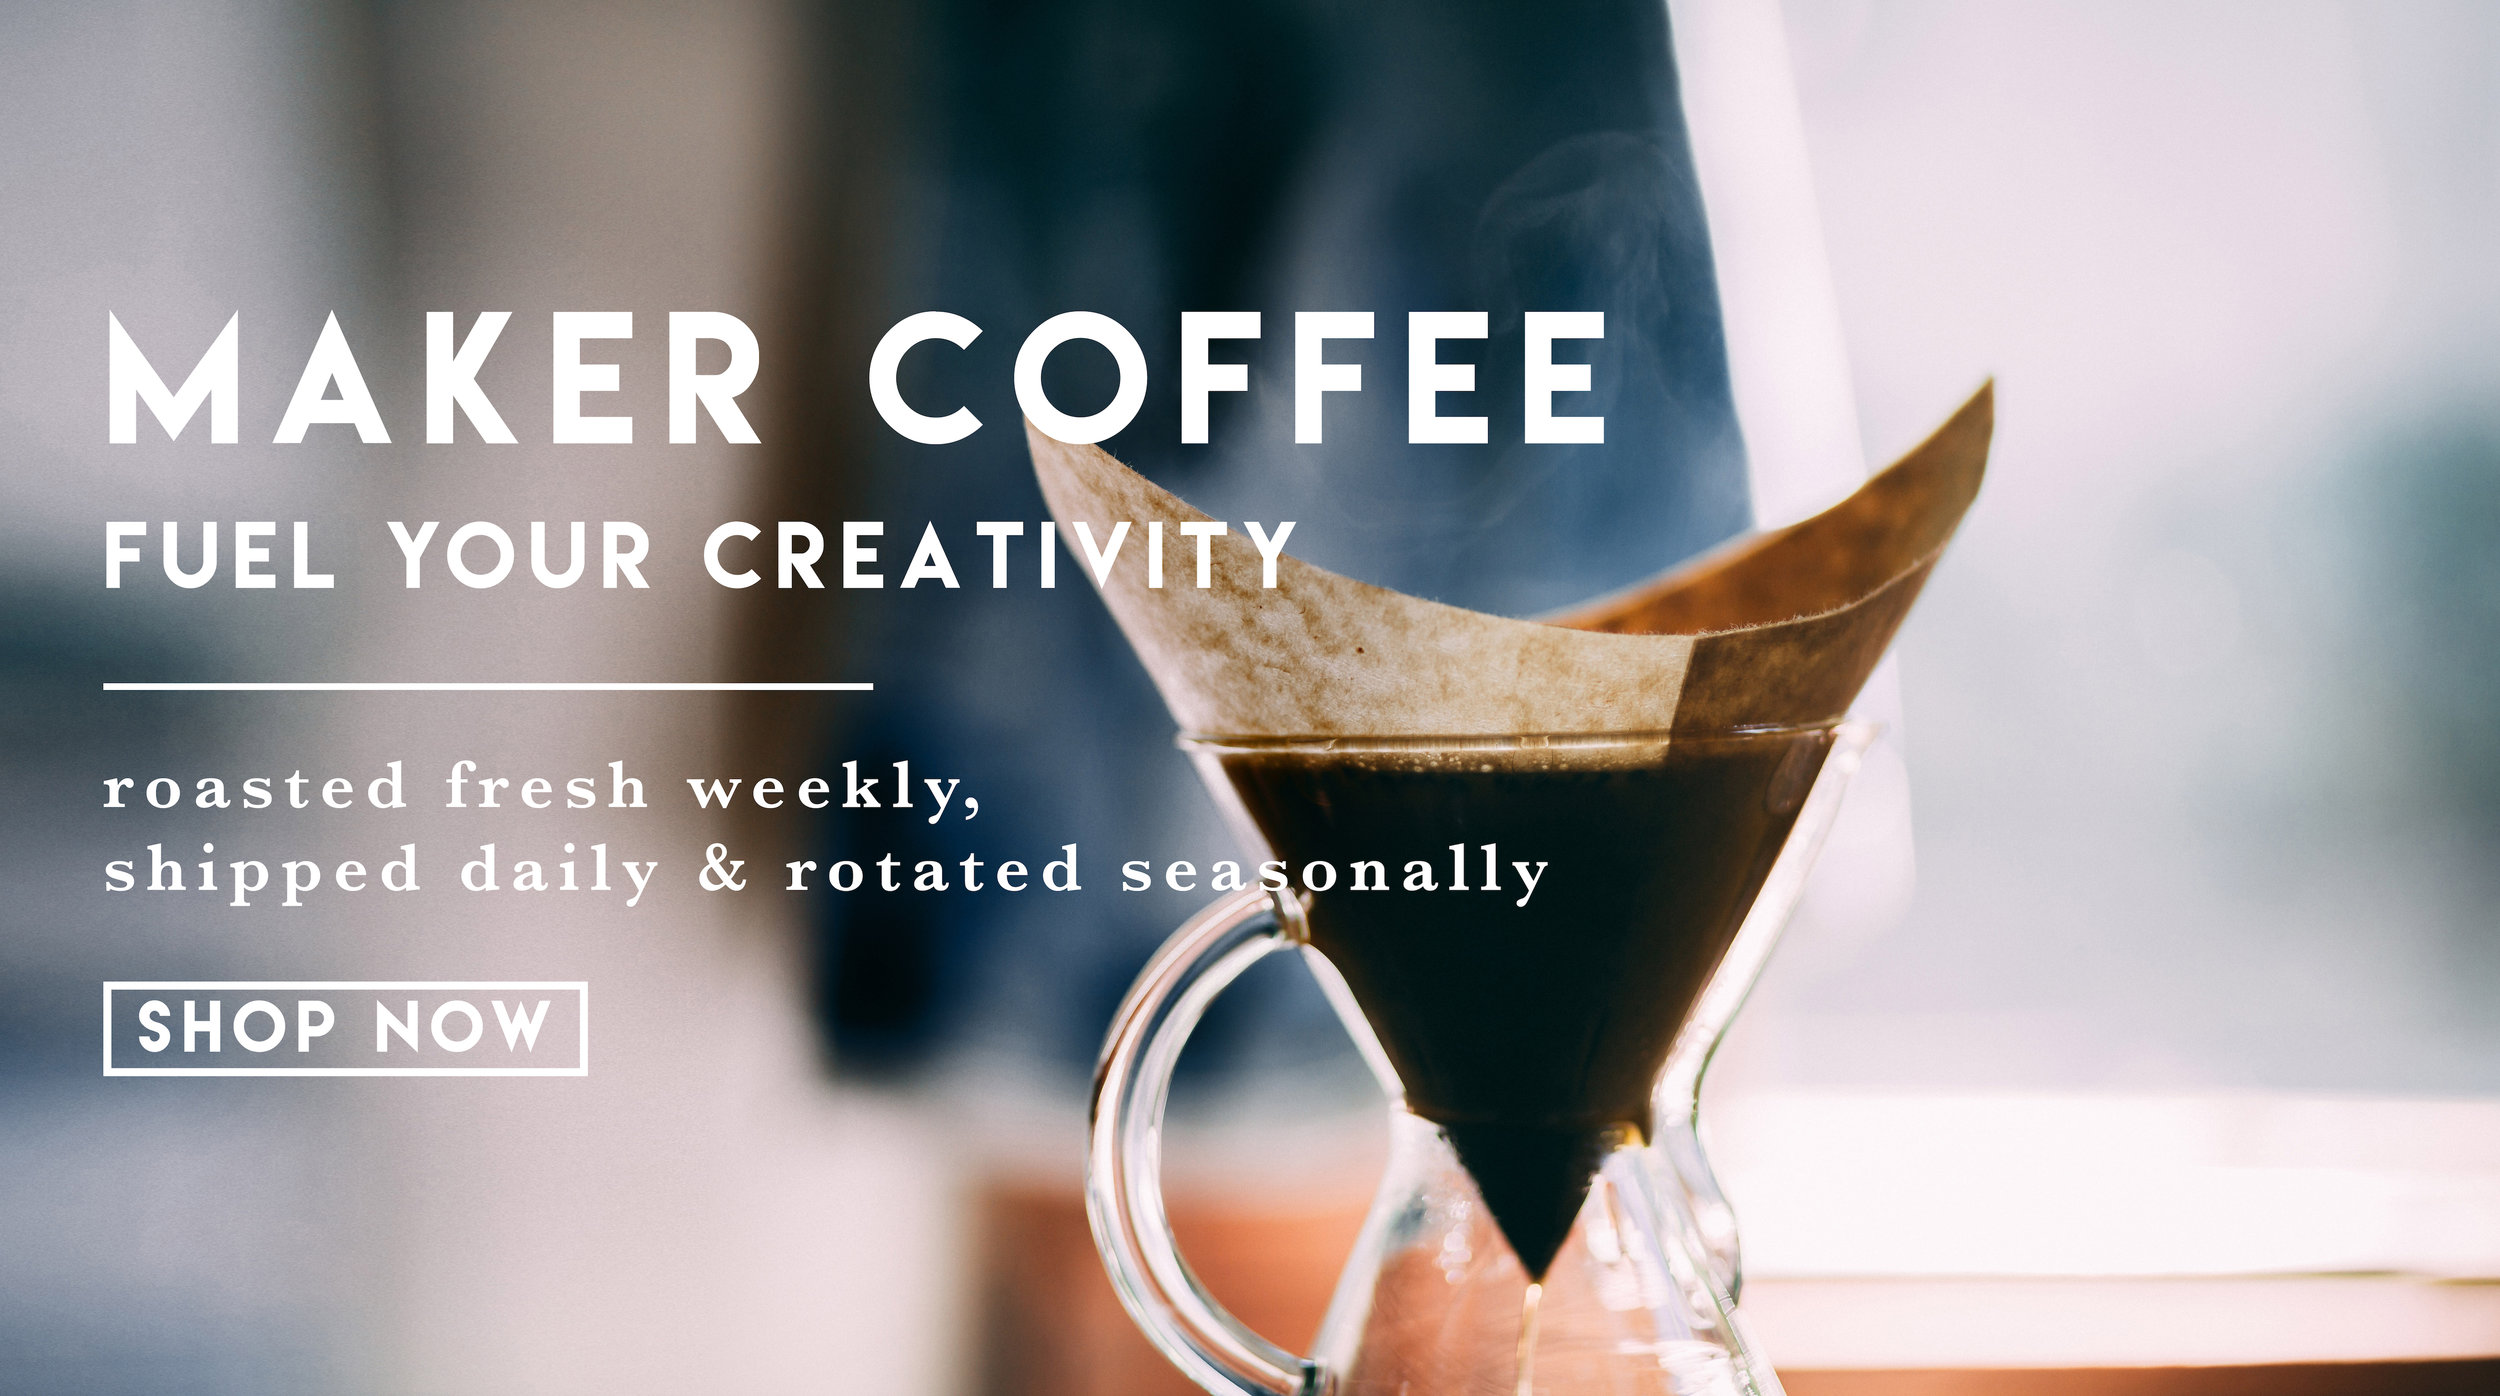 maker_coffee copy copy.jpg